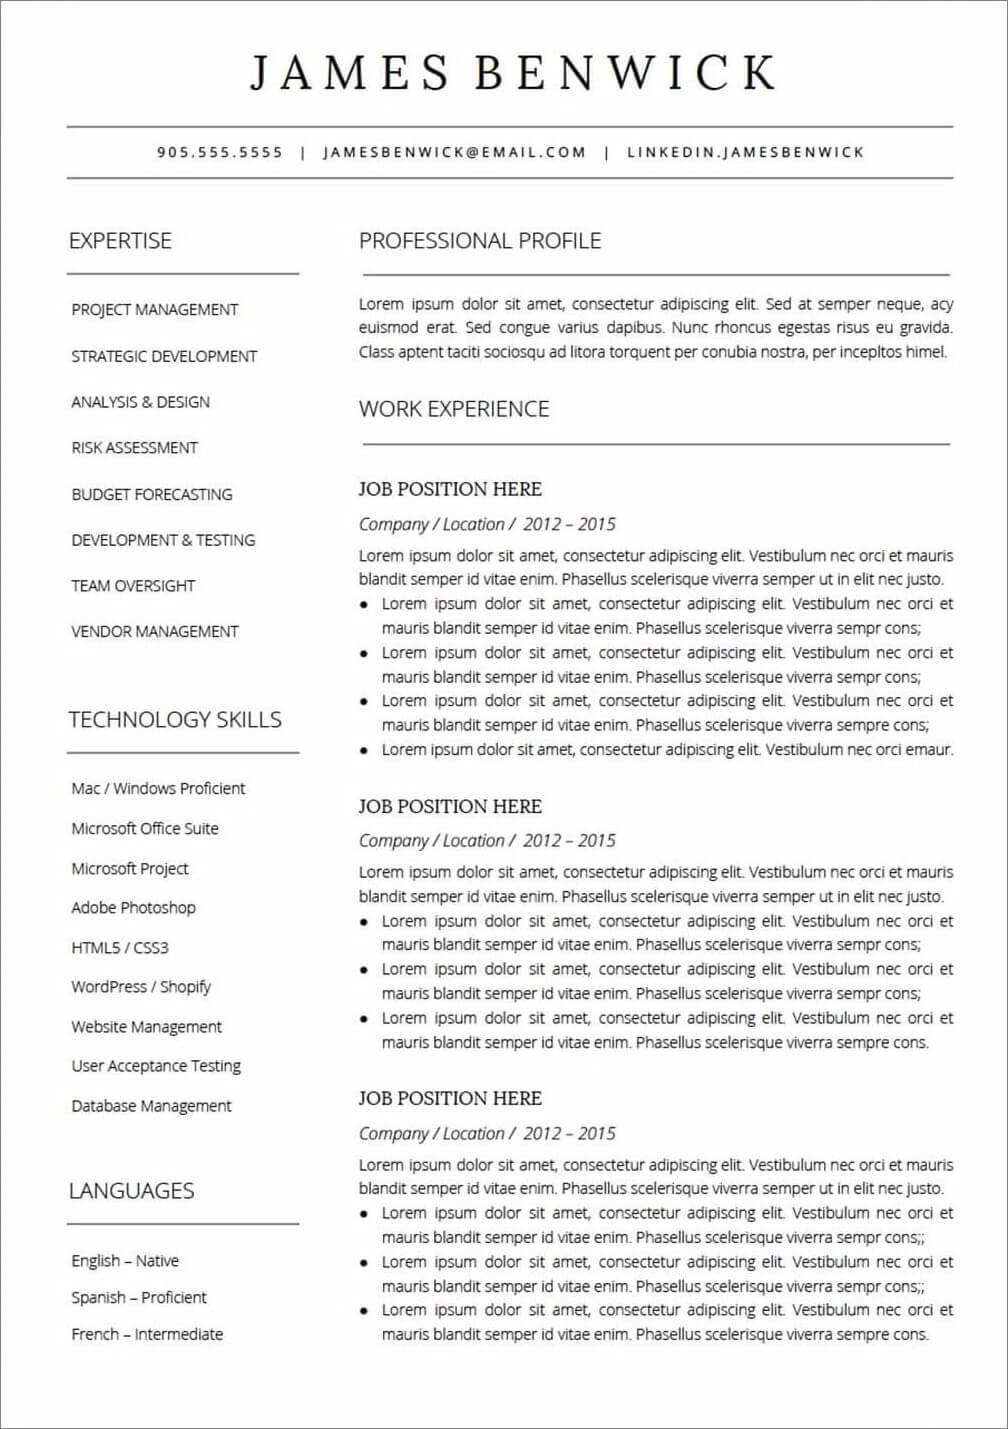 25 Resume Templates For Google Docs Free Download